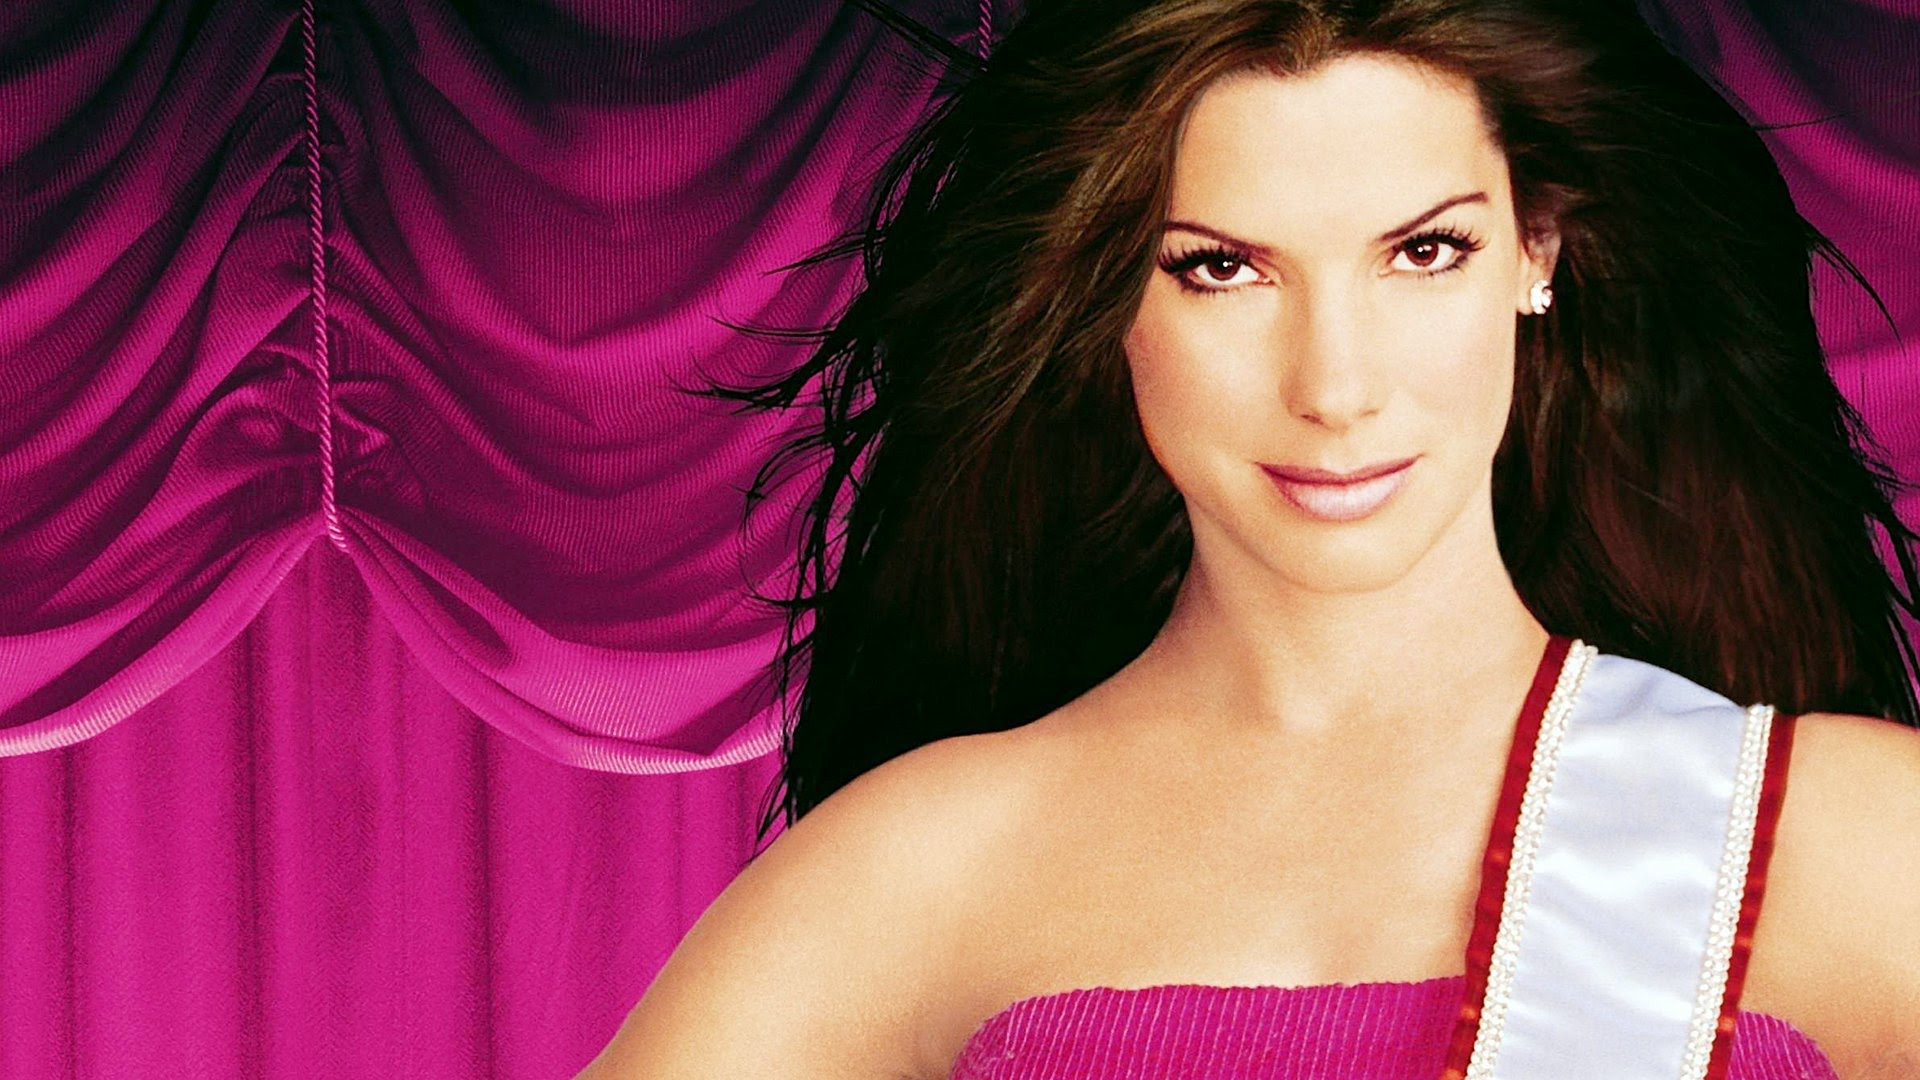 miss congeniality full movie free online no download